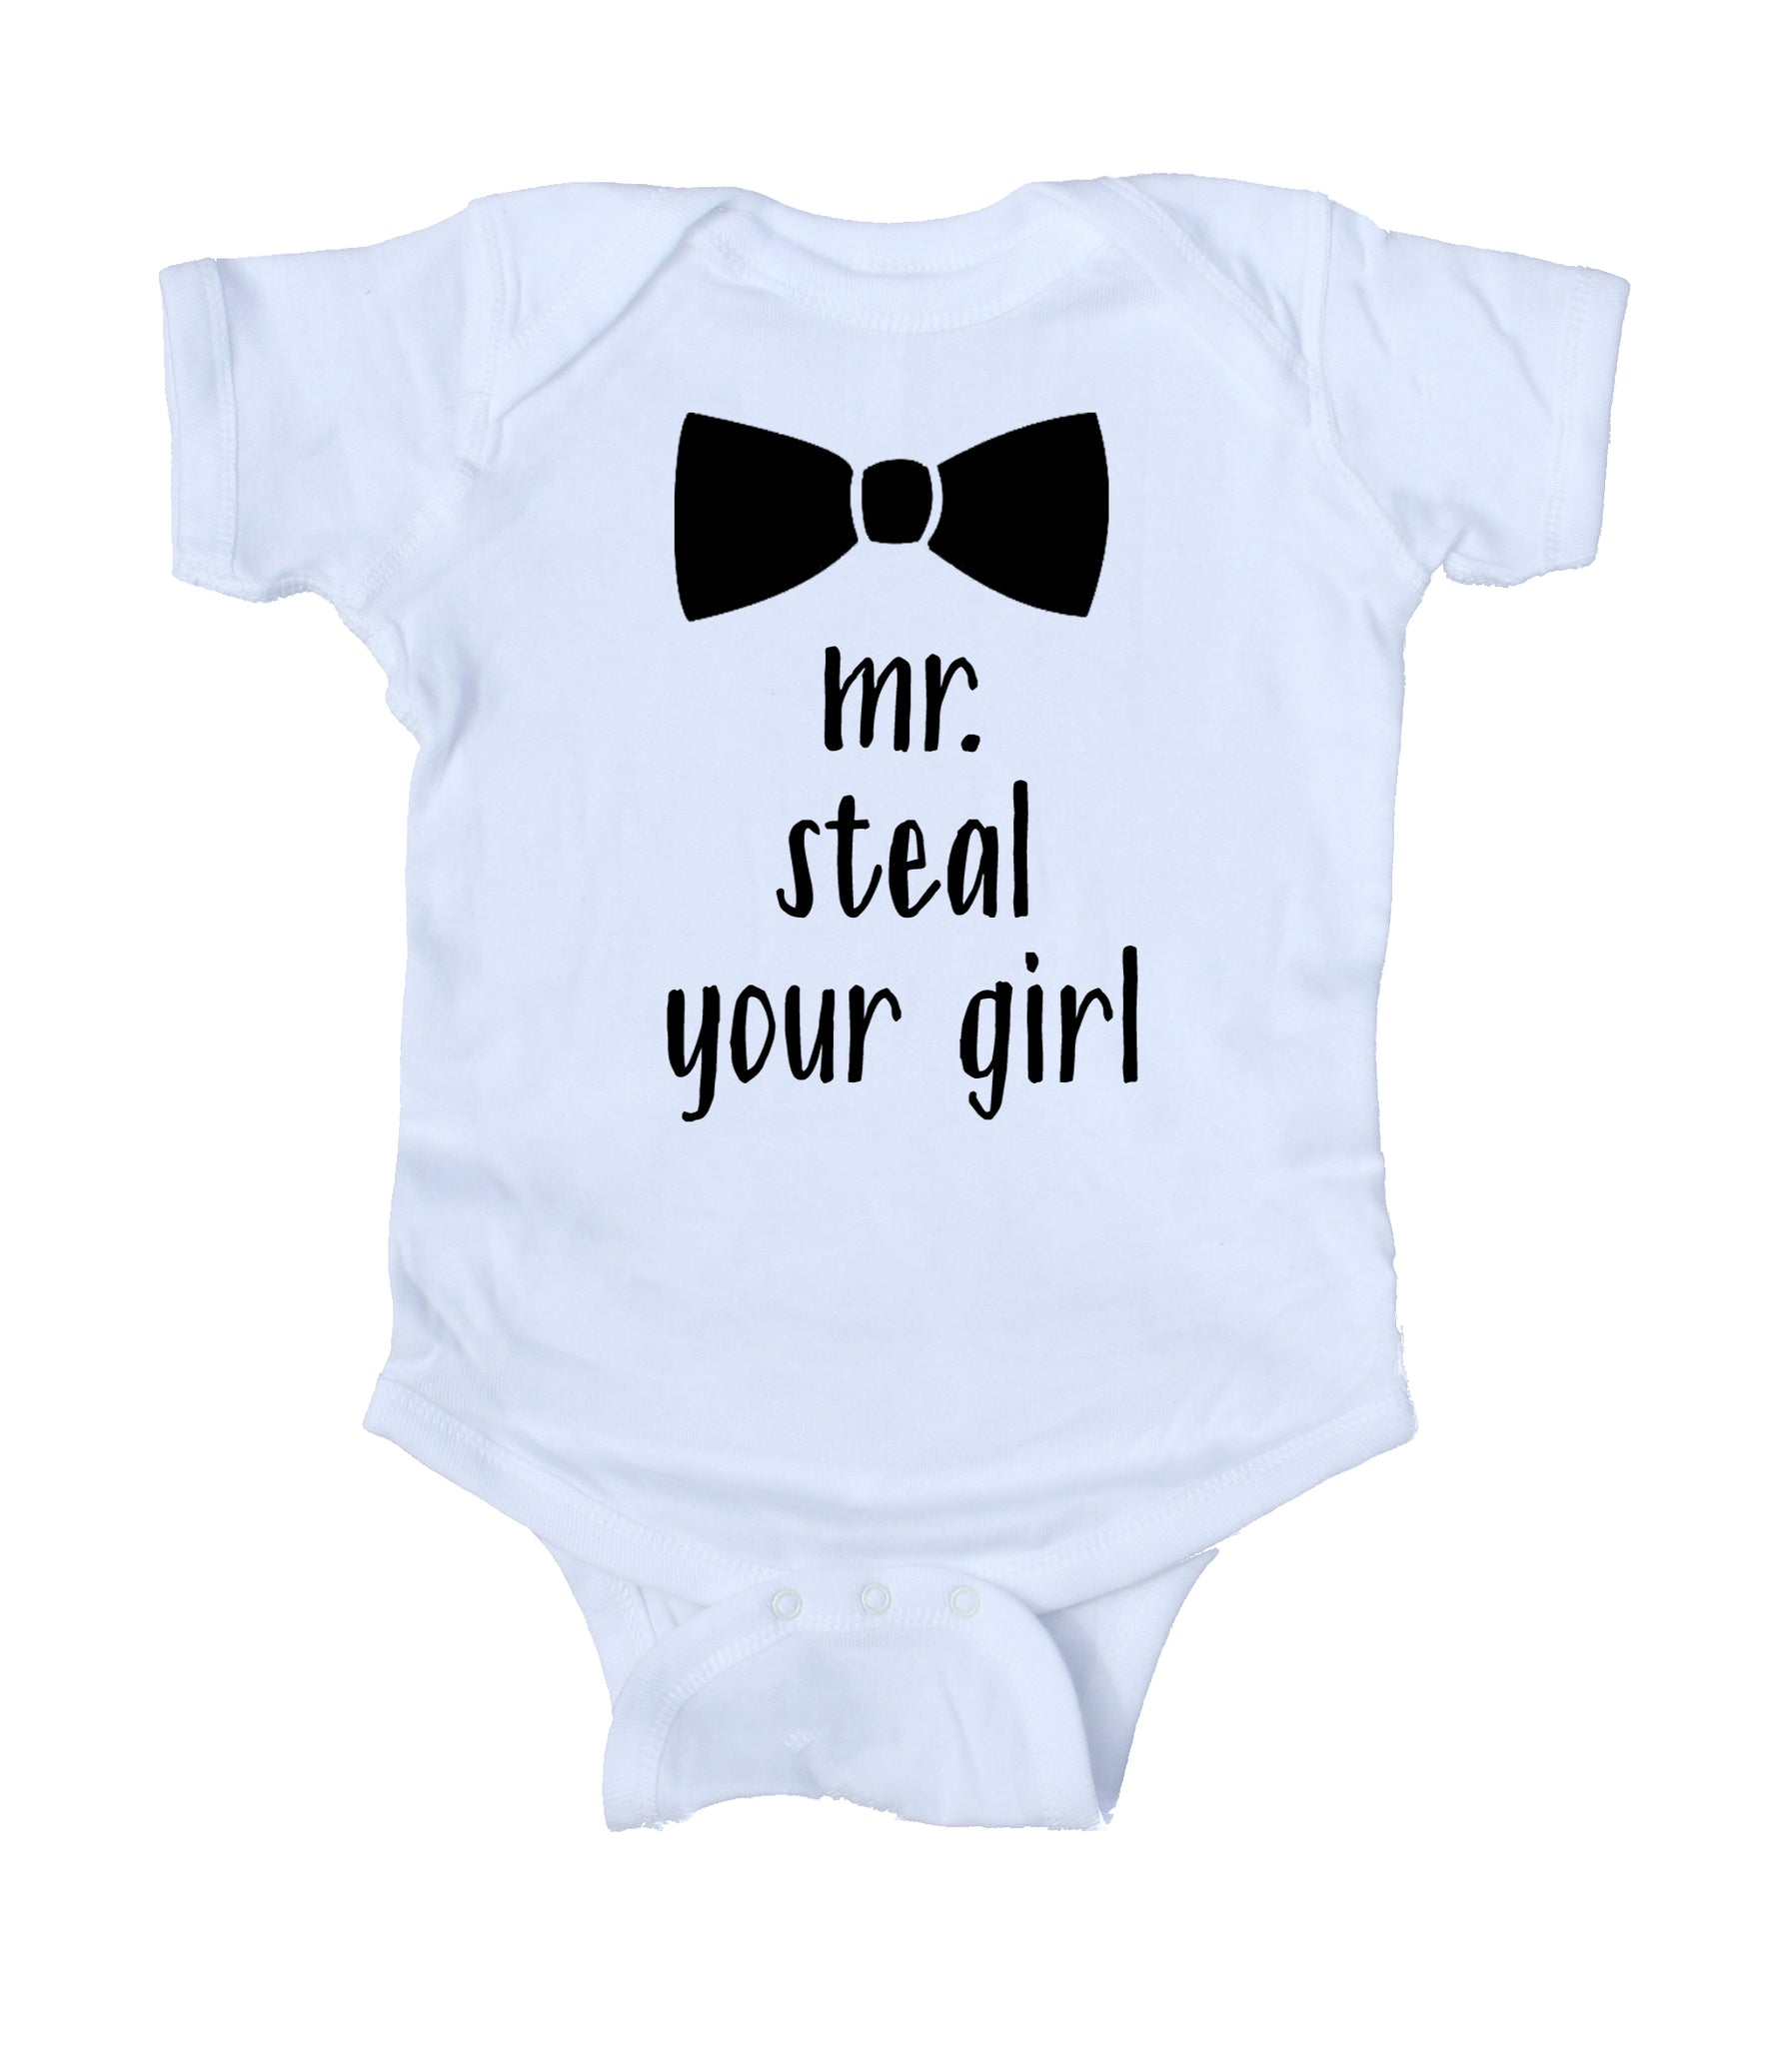 96518acaca33 ... Mr Steal Your Girl Baby Bodysuit Funny Cute Boy Newborn Gift Baby  Shower Infant Clothing